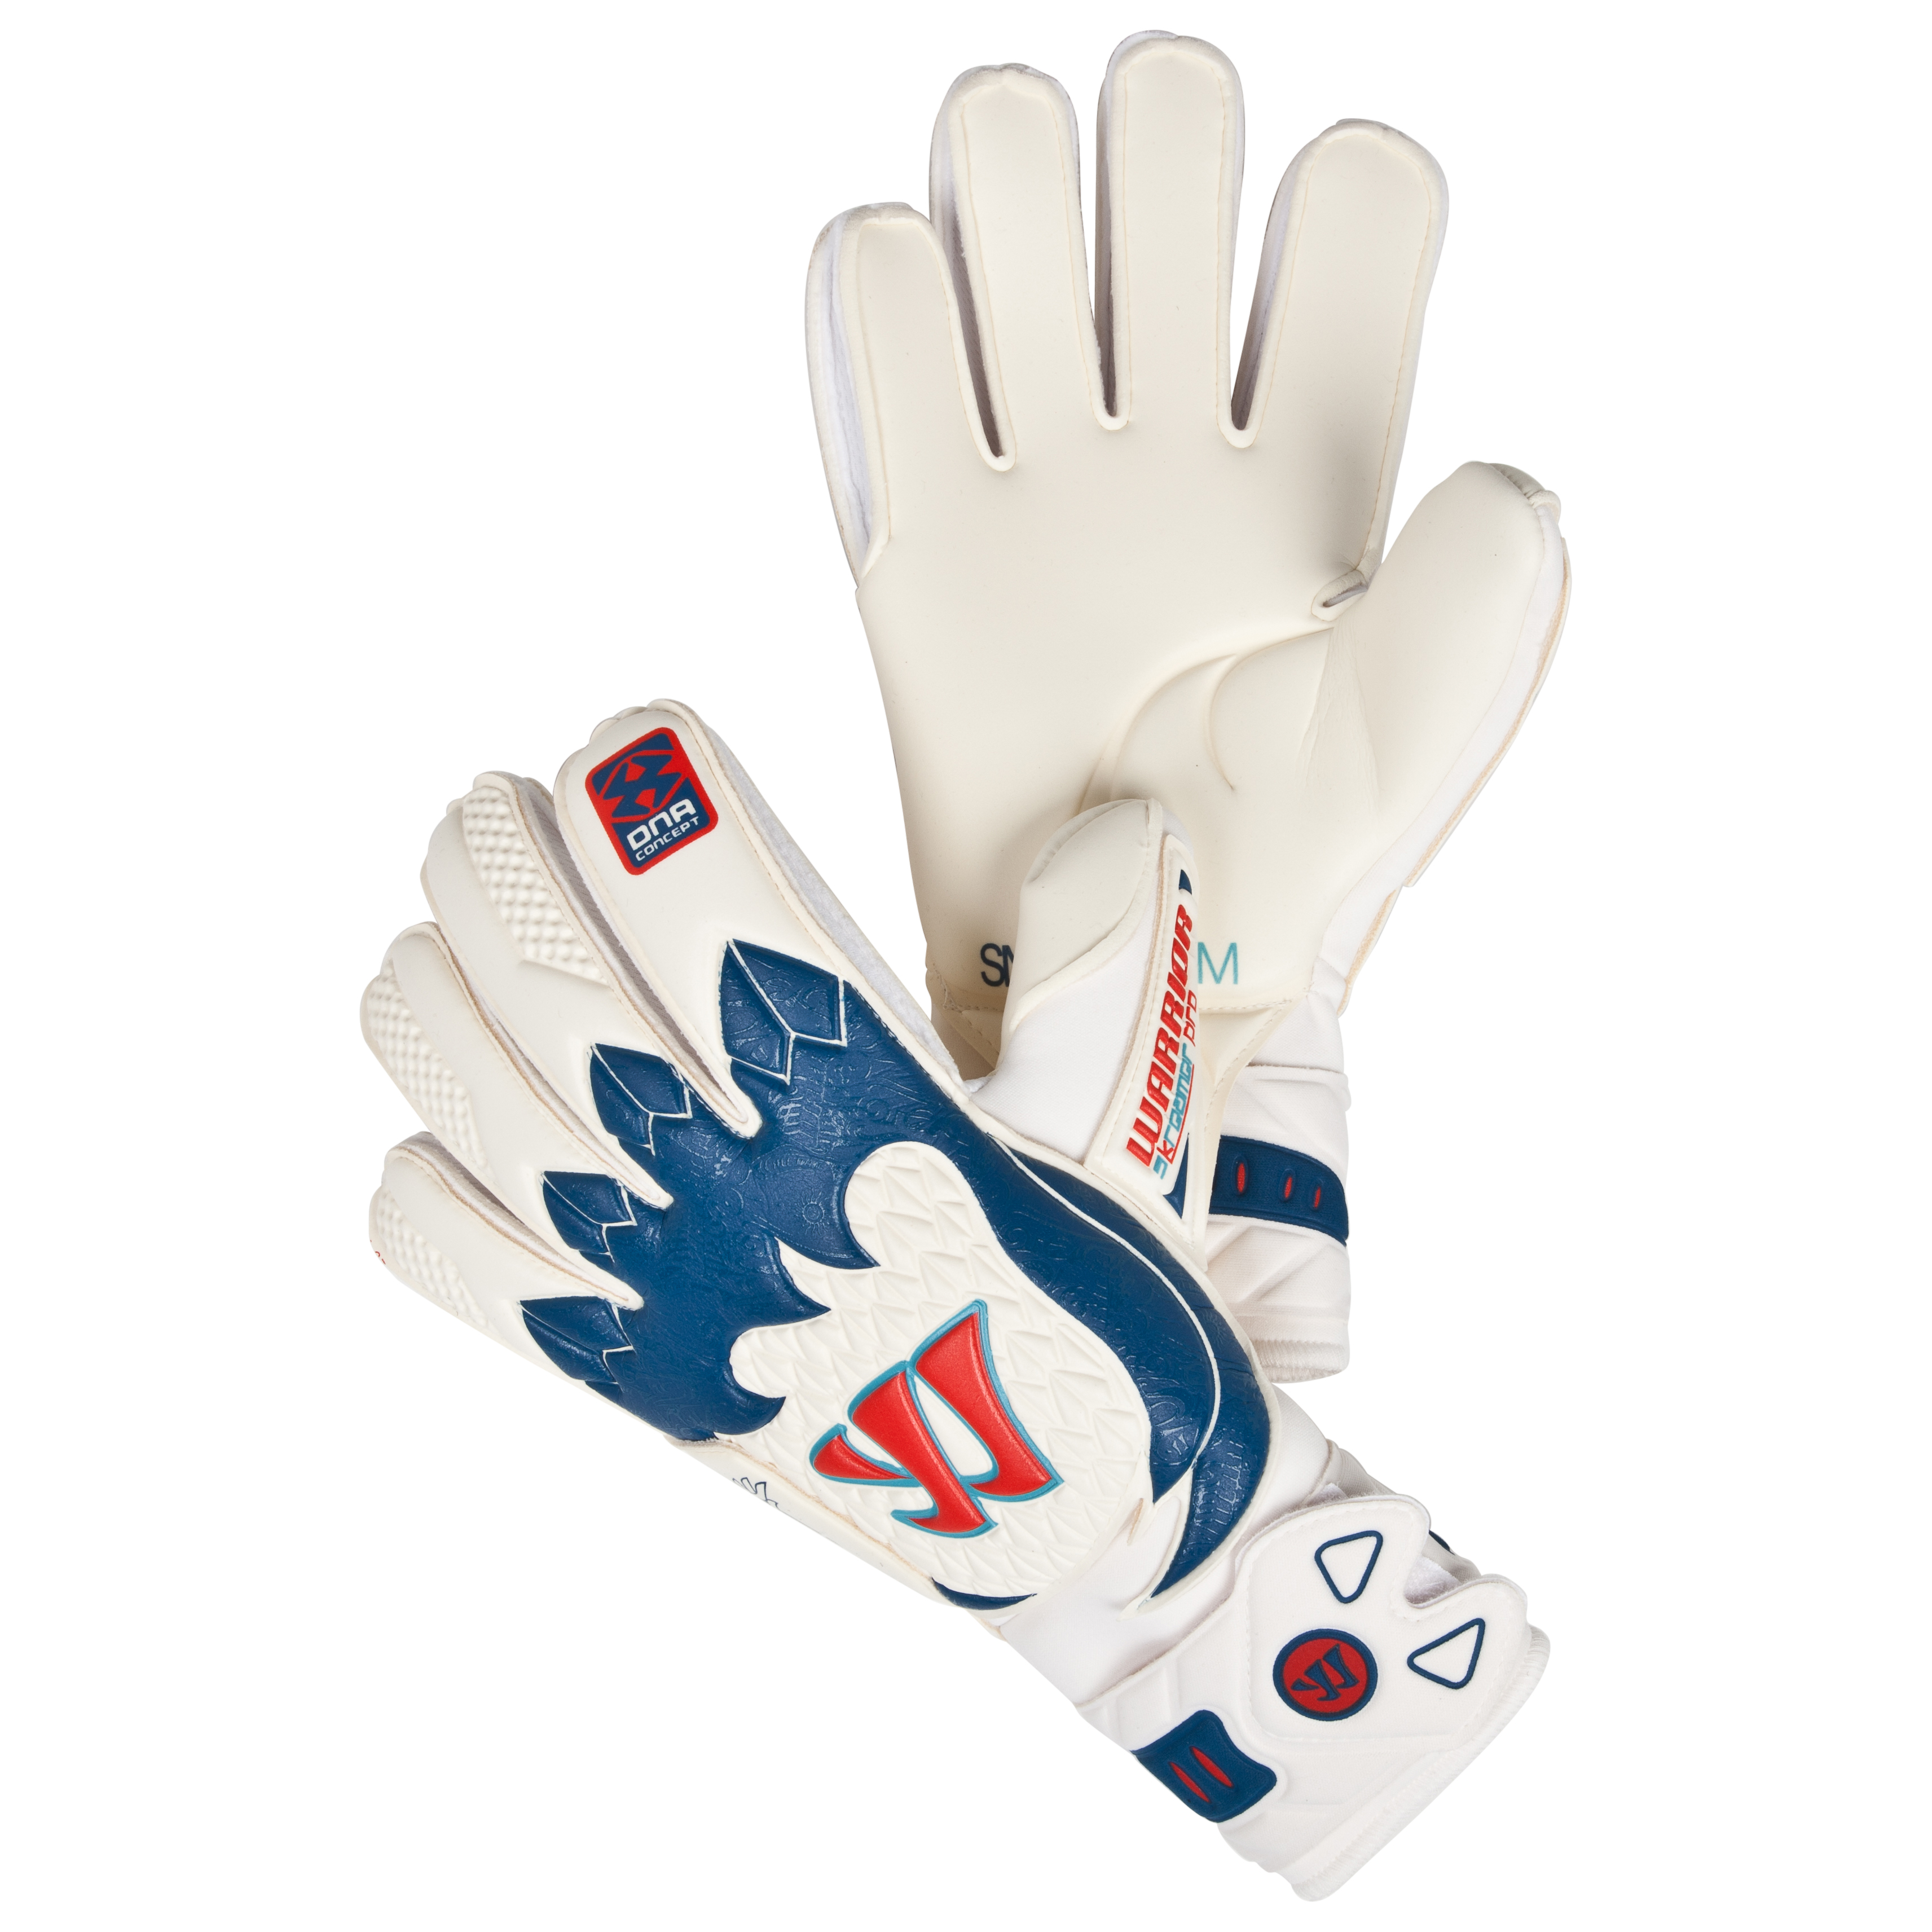 Warrior Sports Skreamer Pro - Flat Goalkeeper Gloves - White/Blue Radiance/Insignia Blue